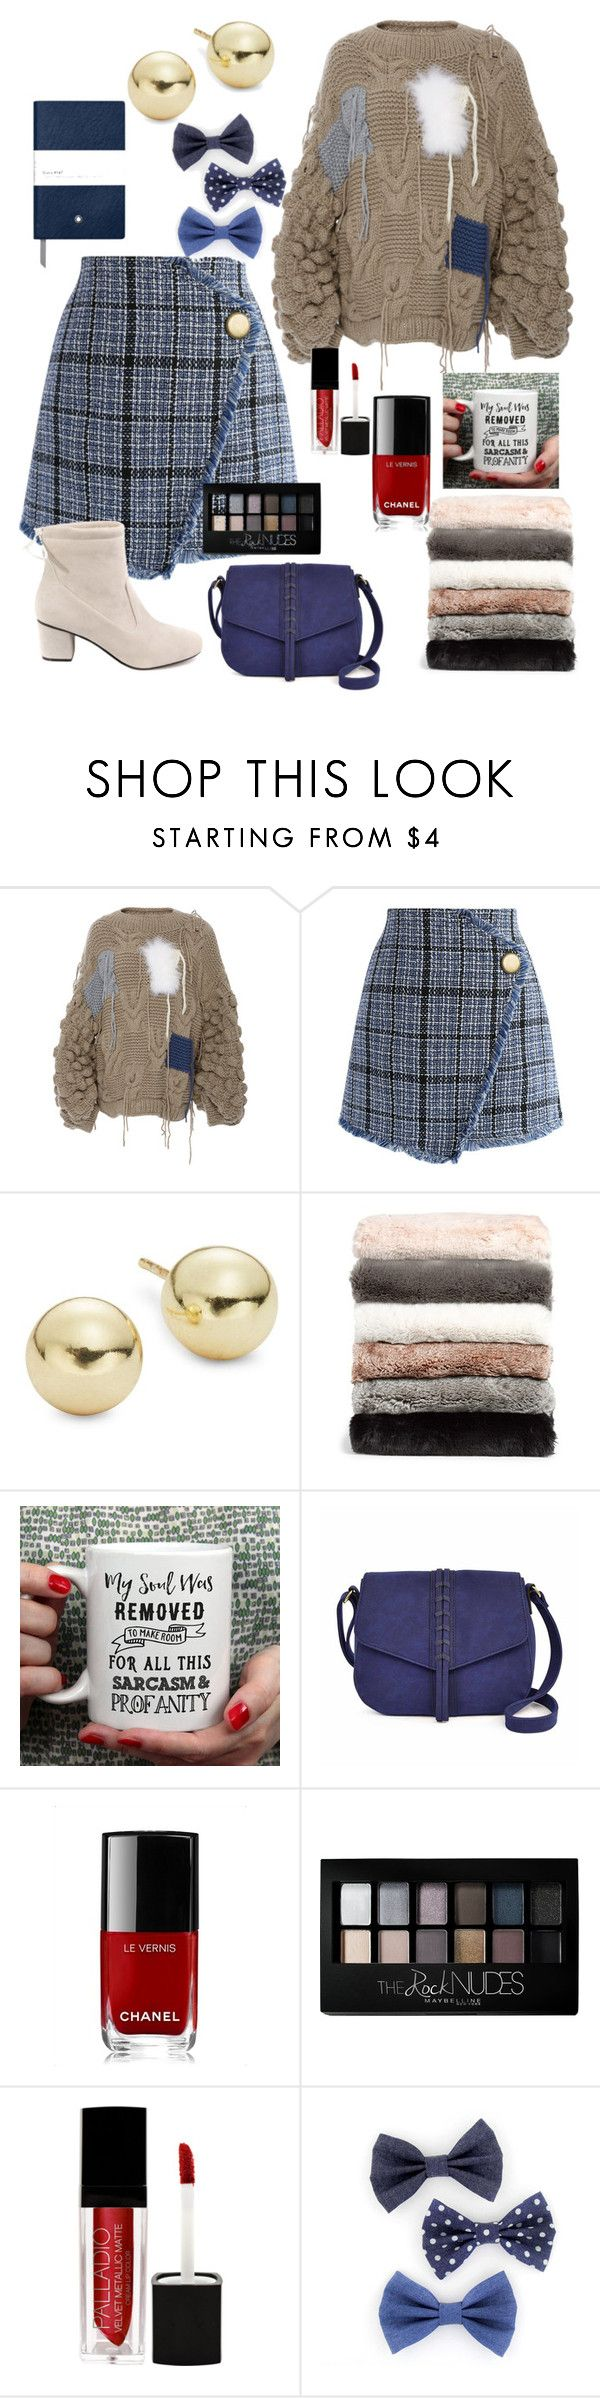 """sweater& skirt"" by natalisdomini ❤ liked on Polyvore featuring Tuinch, Chicwish, Lord & Taylor, Nordstrom, A.N.A, Chanel, Maybelline and Montblanc"